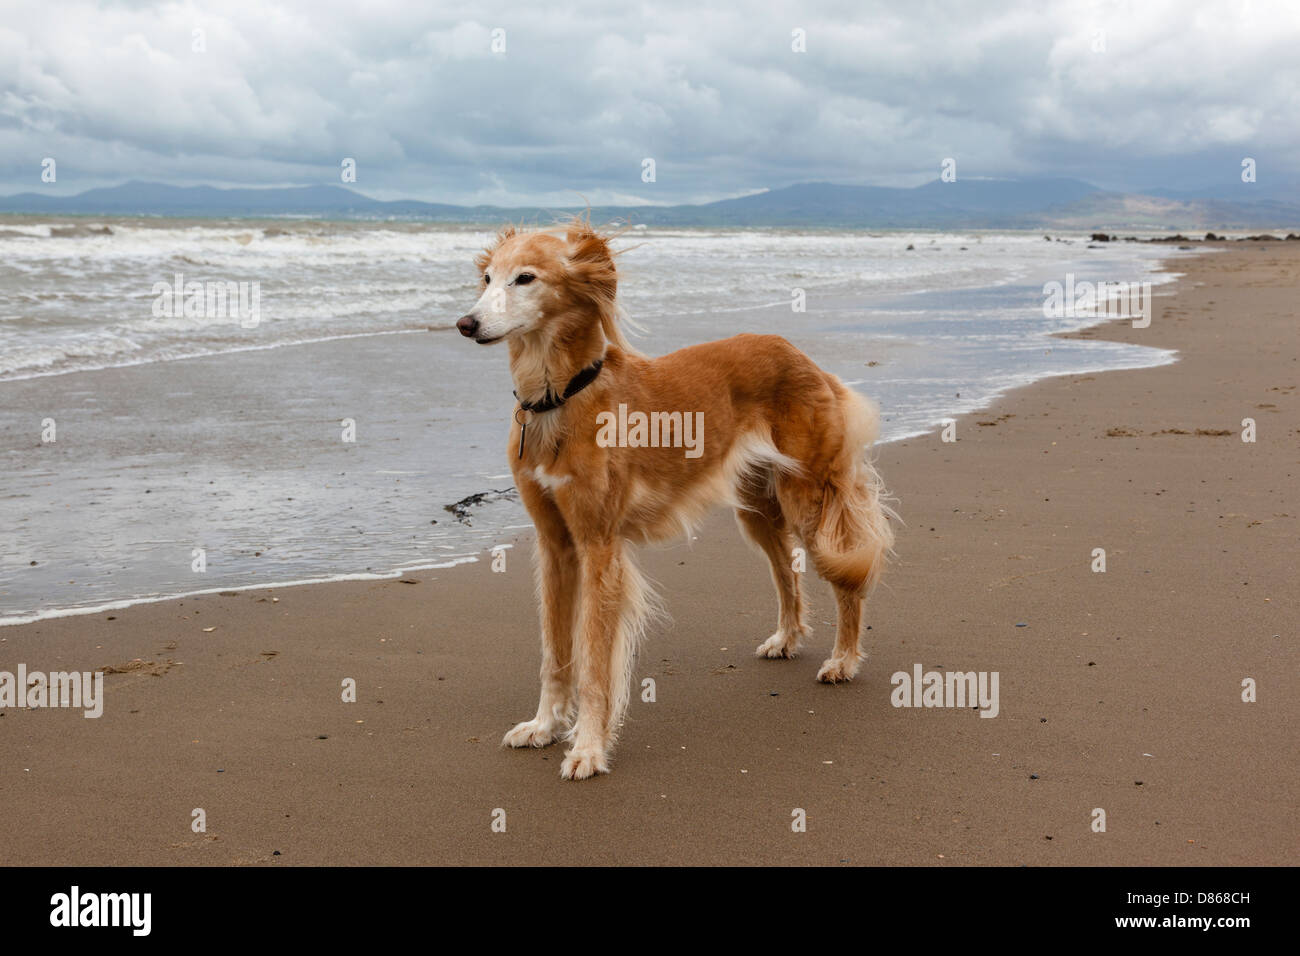 A saluki - whippet cross lurcher standing on a deserted beach in